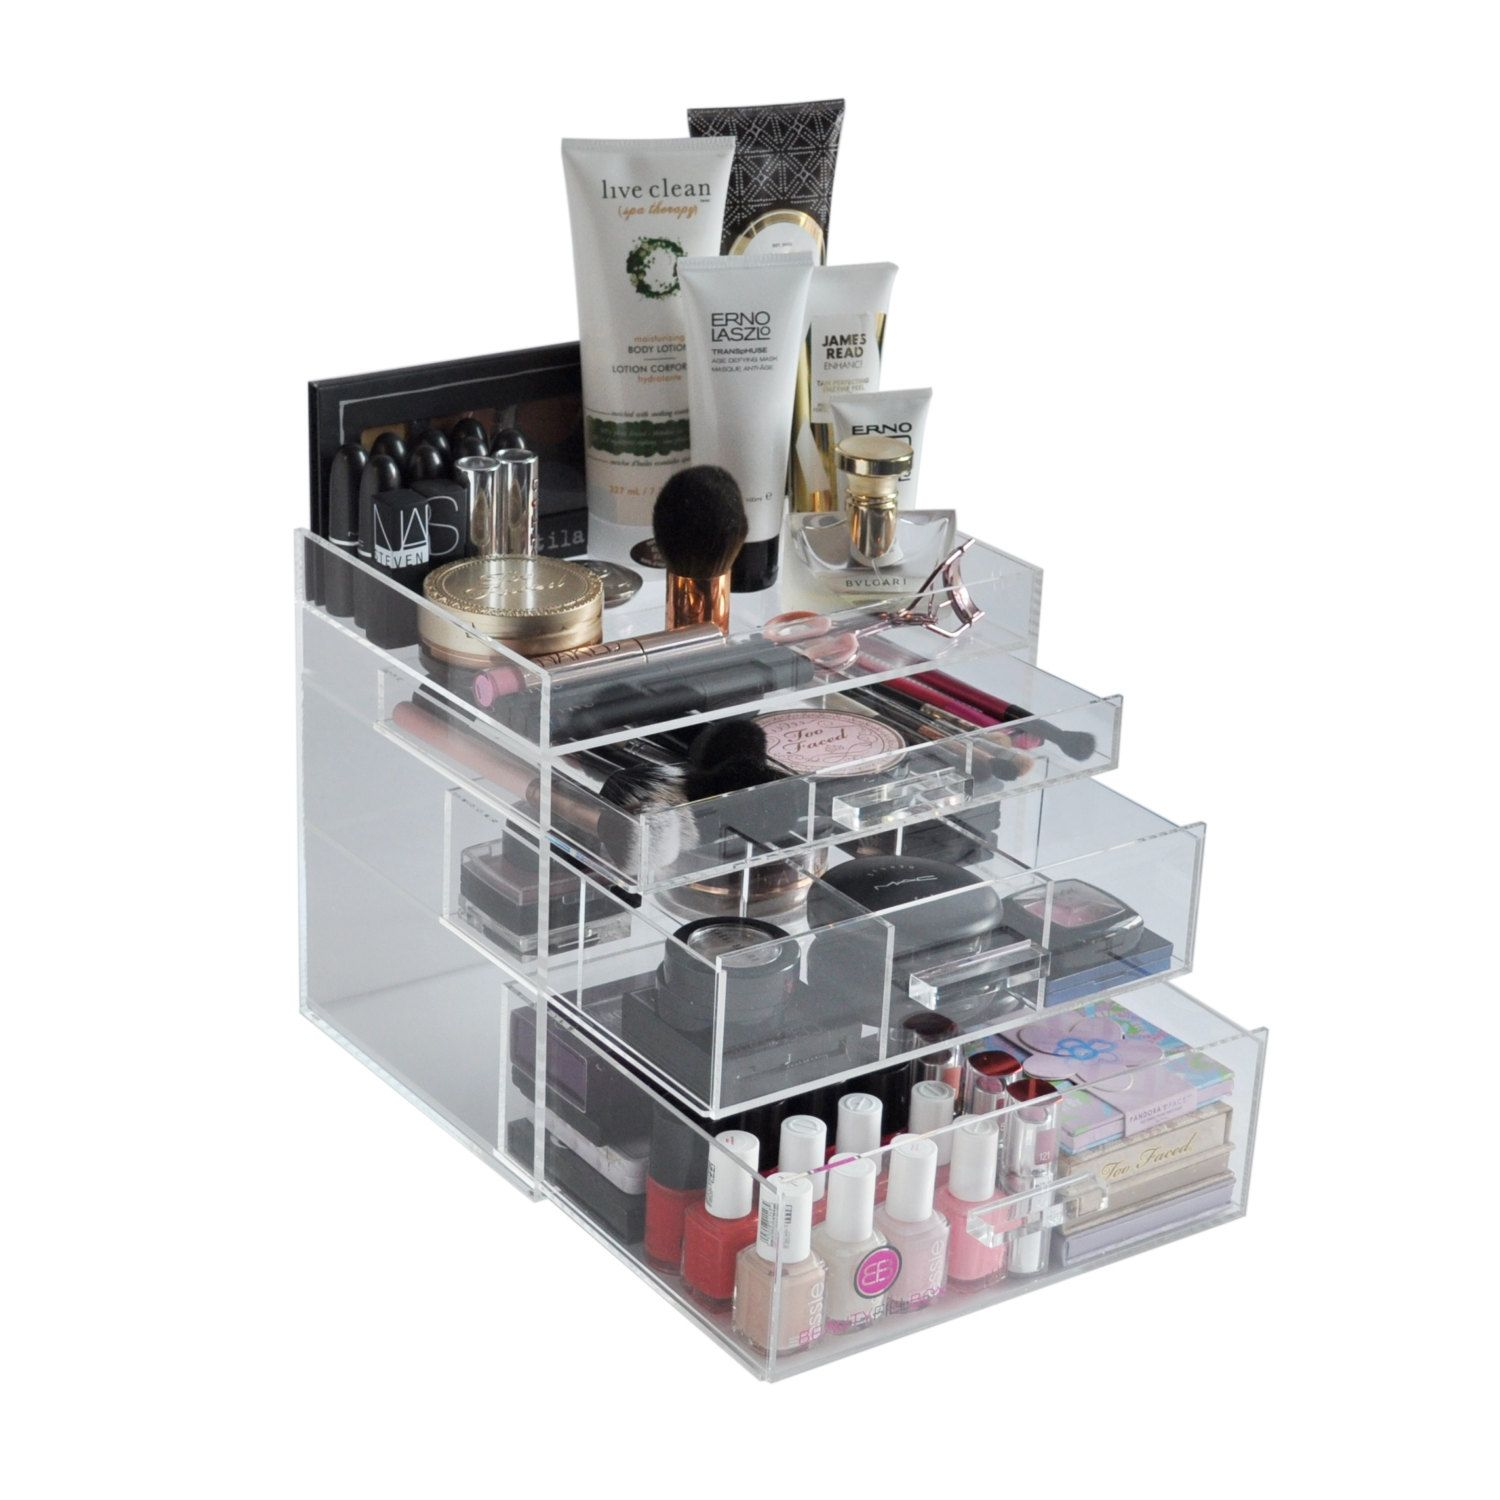 Clear Acrylic Makeup Organizer Chicbox Vanity By Beautyfill